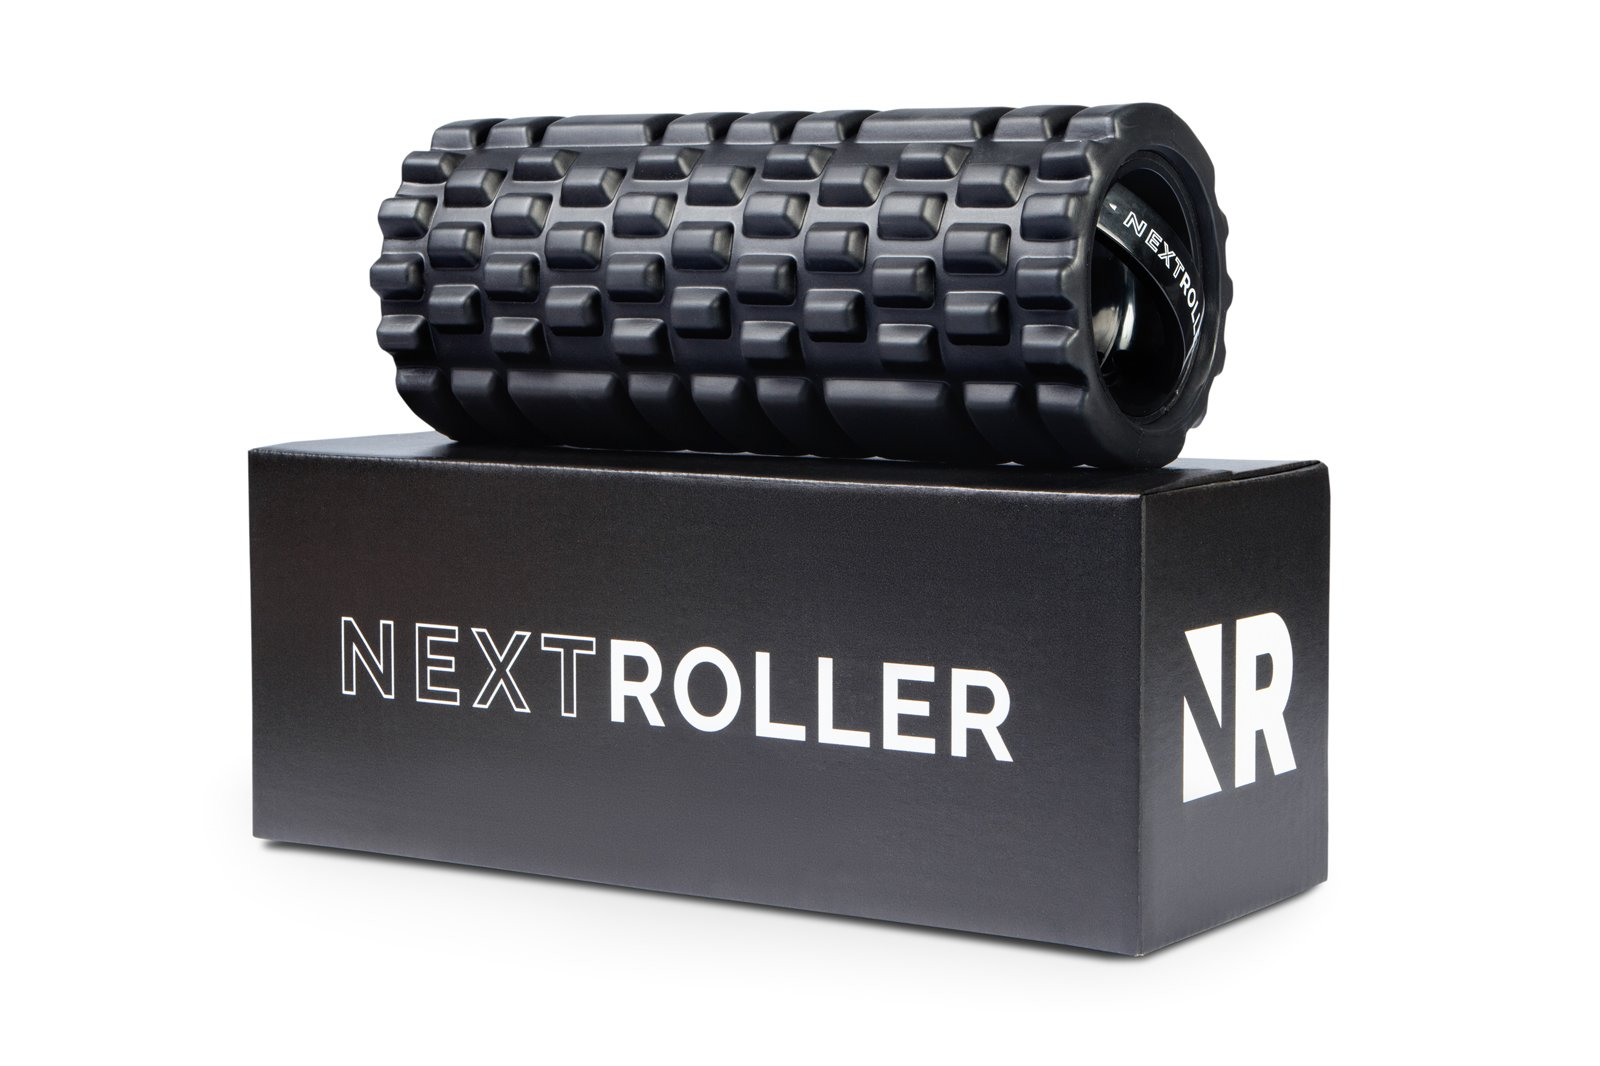 NextRoller 3-Speed Rechargeable Electric Vibrating Foam Roller - The Future of Muscle Recovery, Mobility, and Deep Tissue Trigger Point Sports Massage Therapy - Firm High Density, 1 Year Warranty